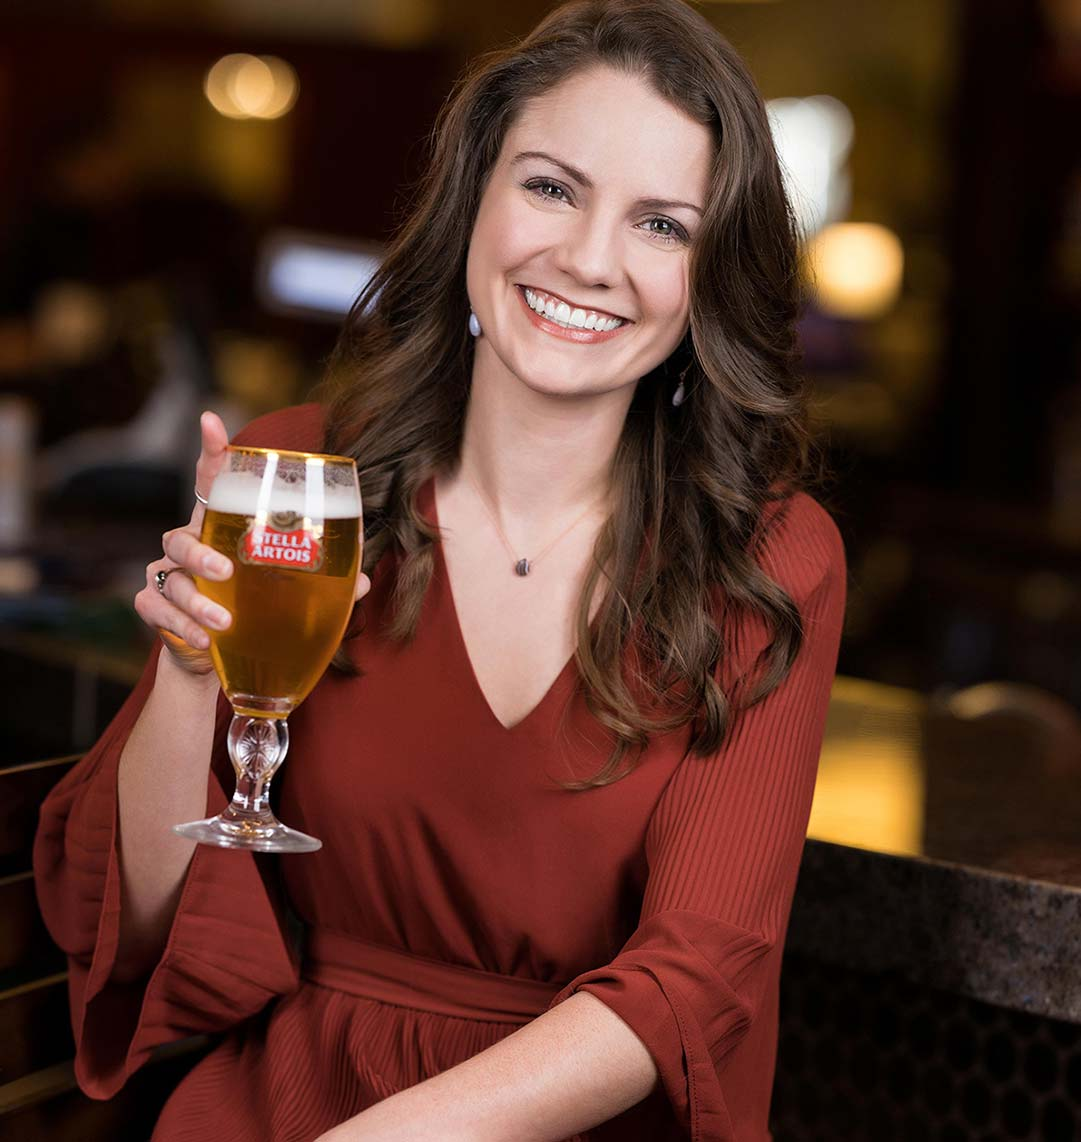 St. Louis Lifestyle Photography with Anheuser-Busch